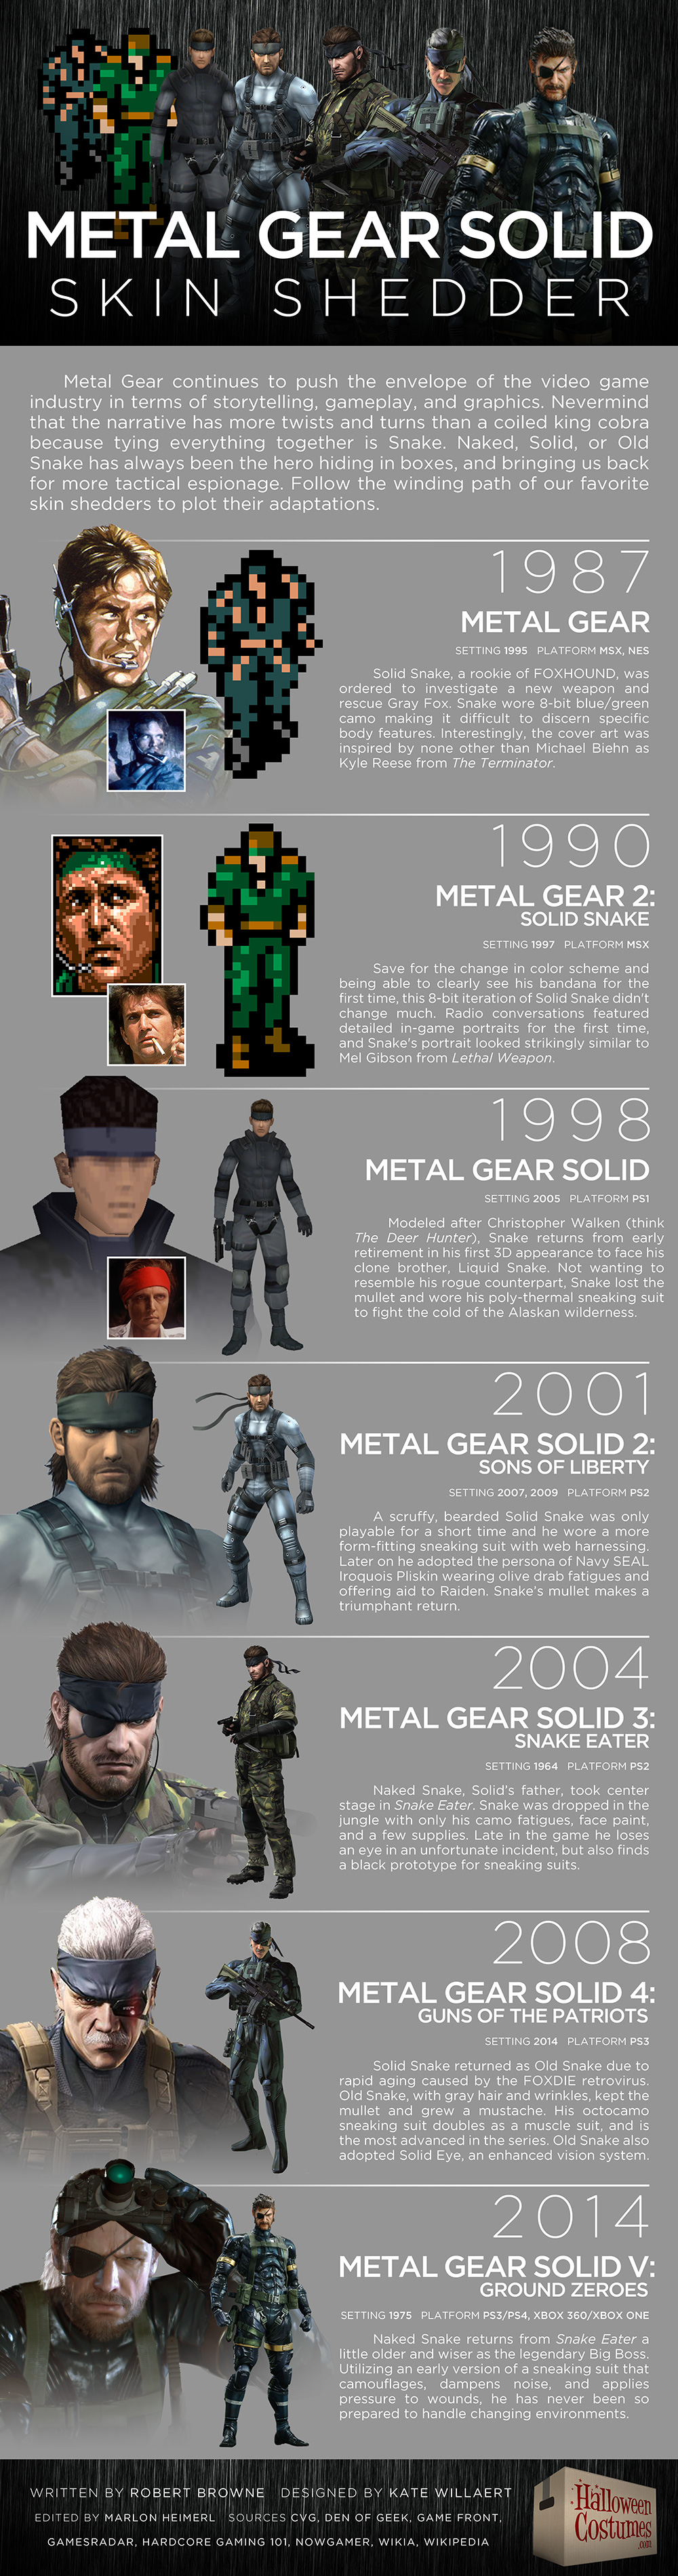 Metal Gear Solid:Skin Shedder Infographic